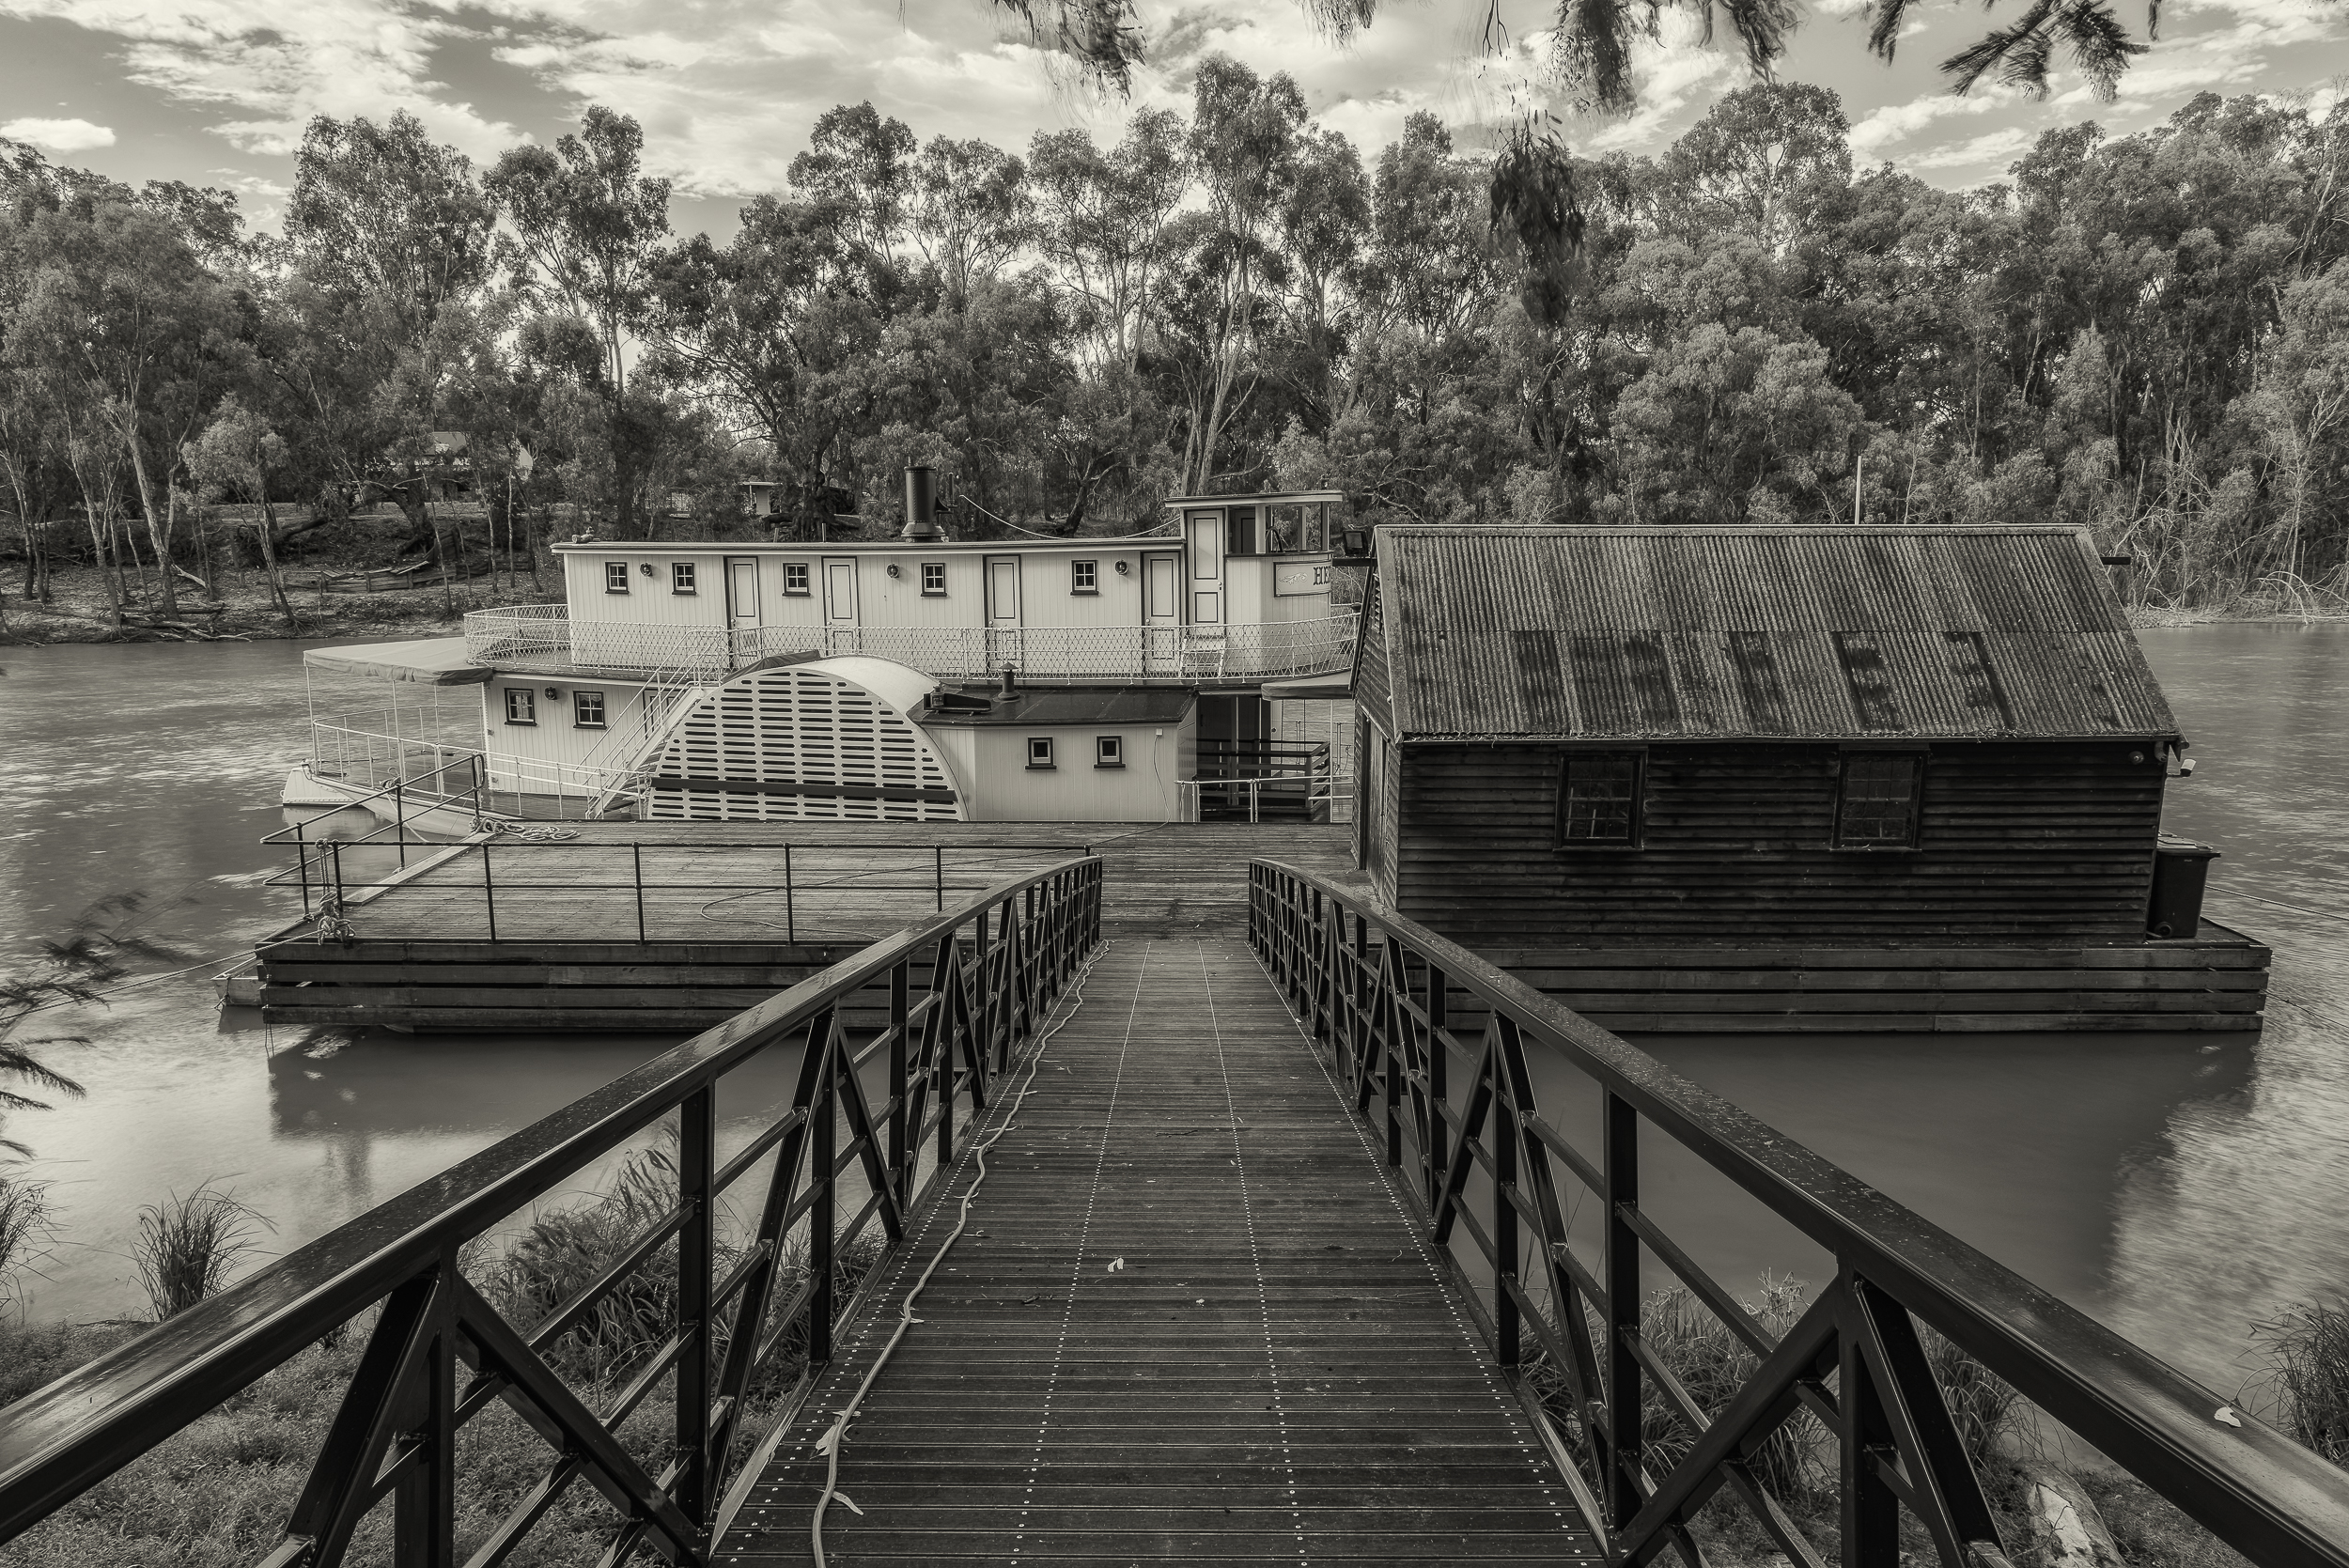 A  houseboat  moored by the  Murray River  near  Echuca, Australia .